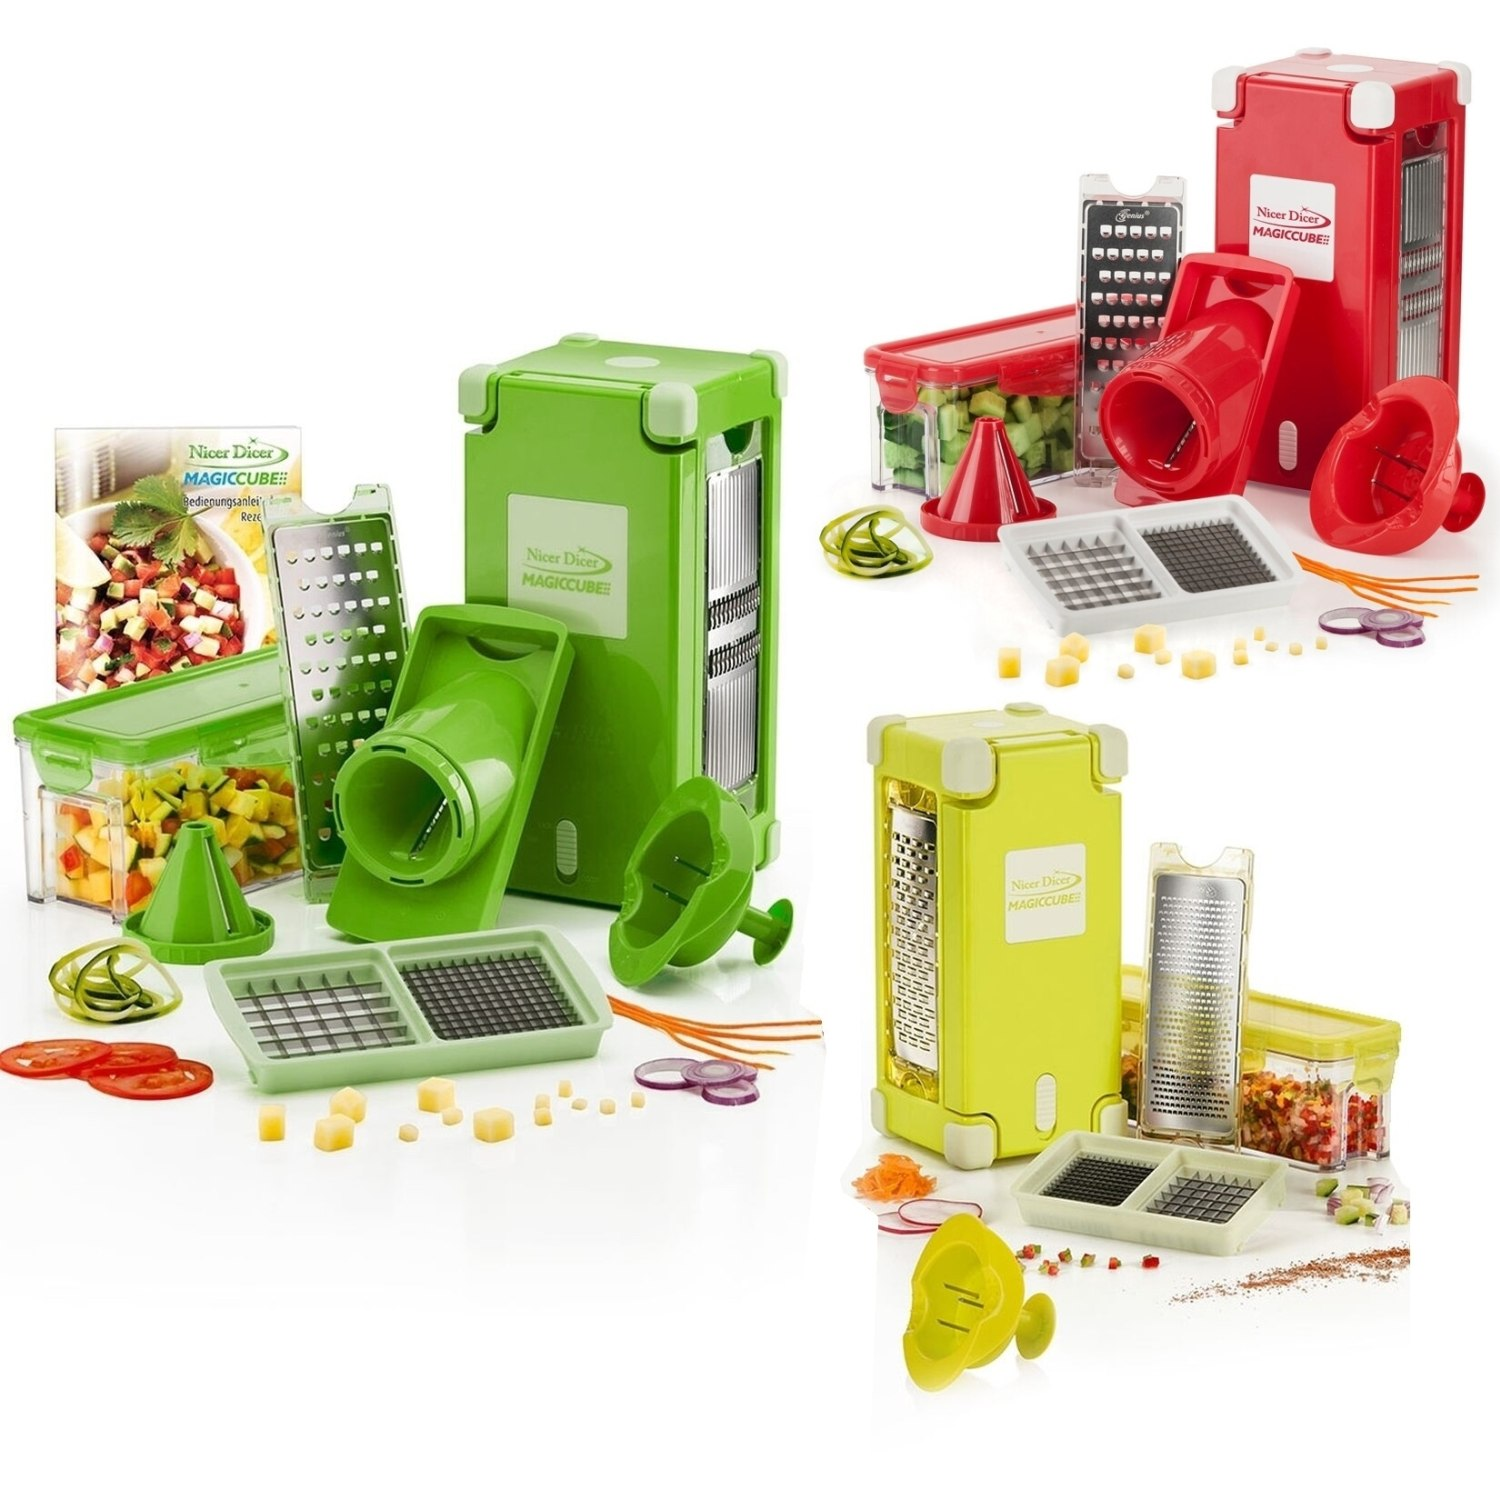 auswahl genius nicer dicer magic cube smart gourmet gem seschneider ebay. Black Bedroom Furniture Sets. Home Design Ideas